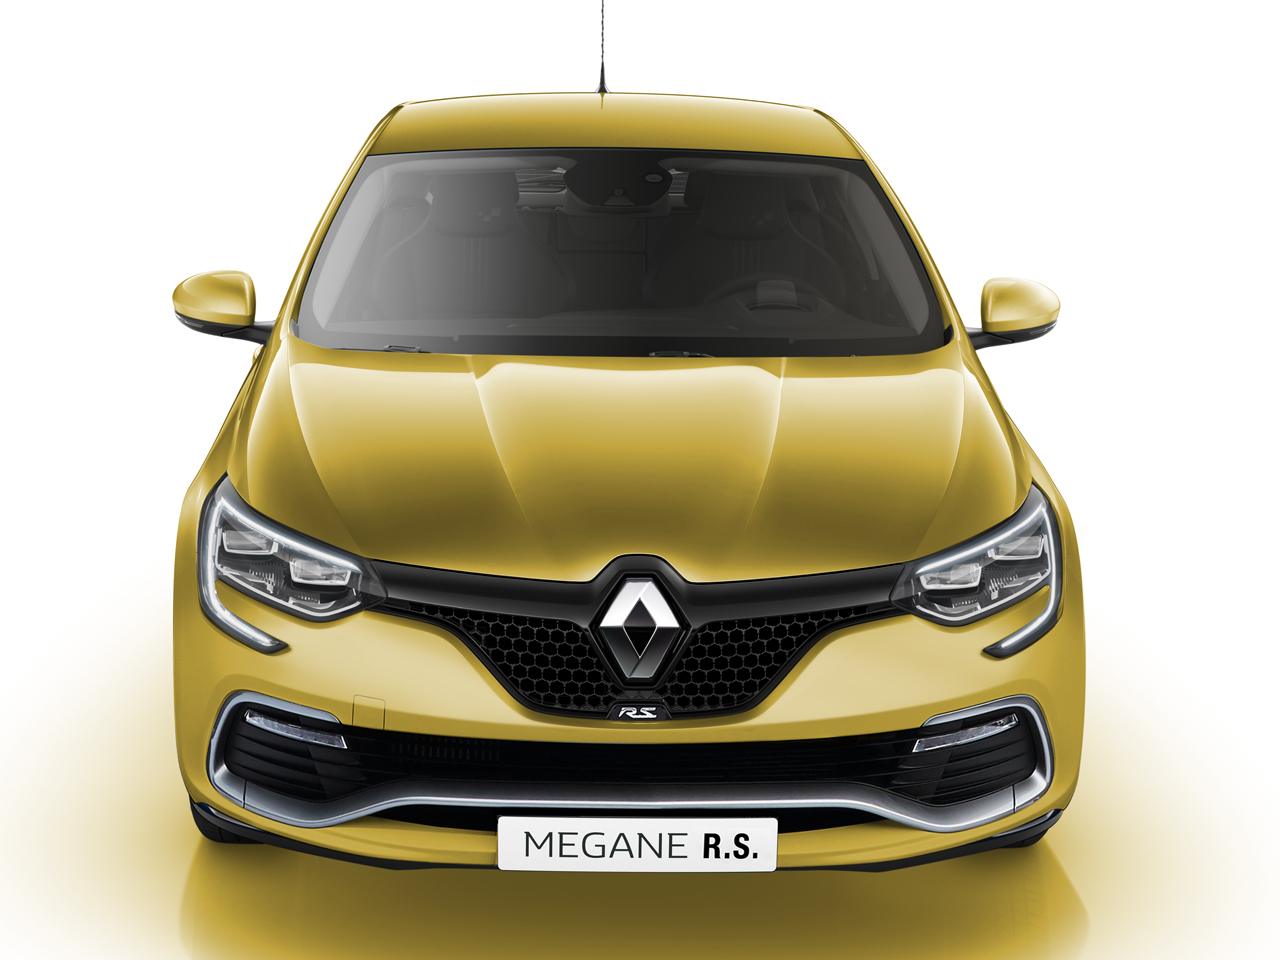 renault m gane 4 2016 le break estate en 2016 la rs en 2018 l 39 argus. Black Bedroom Furniture Sets. Home Design Ideas